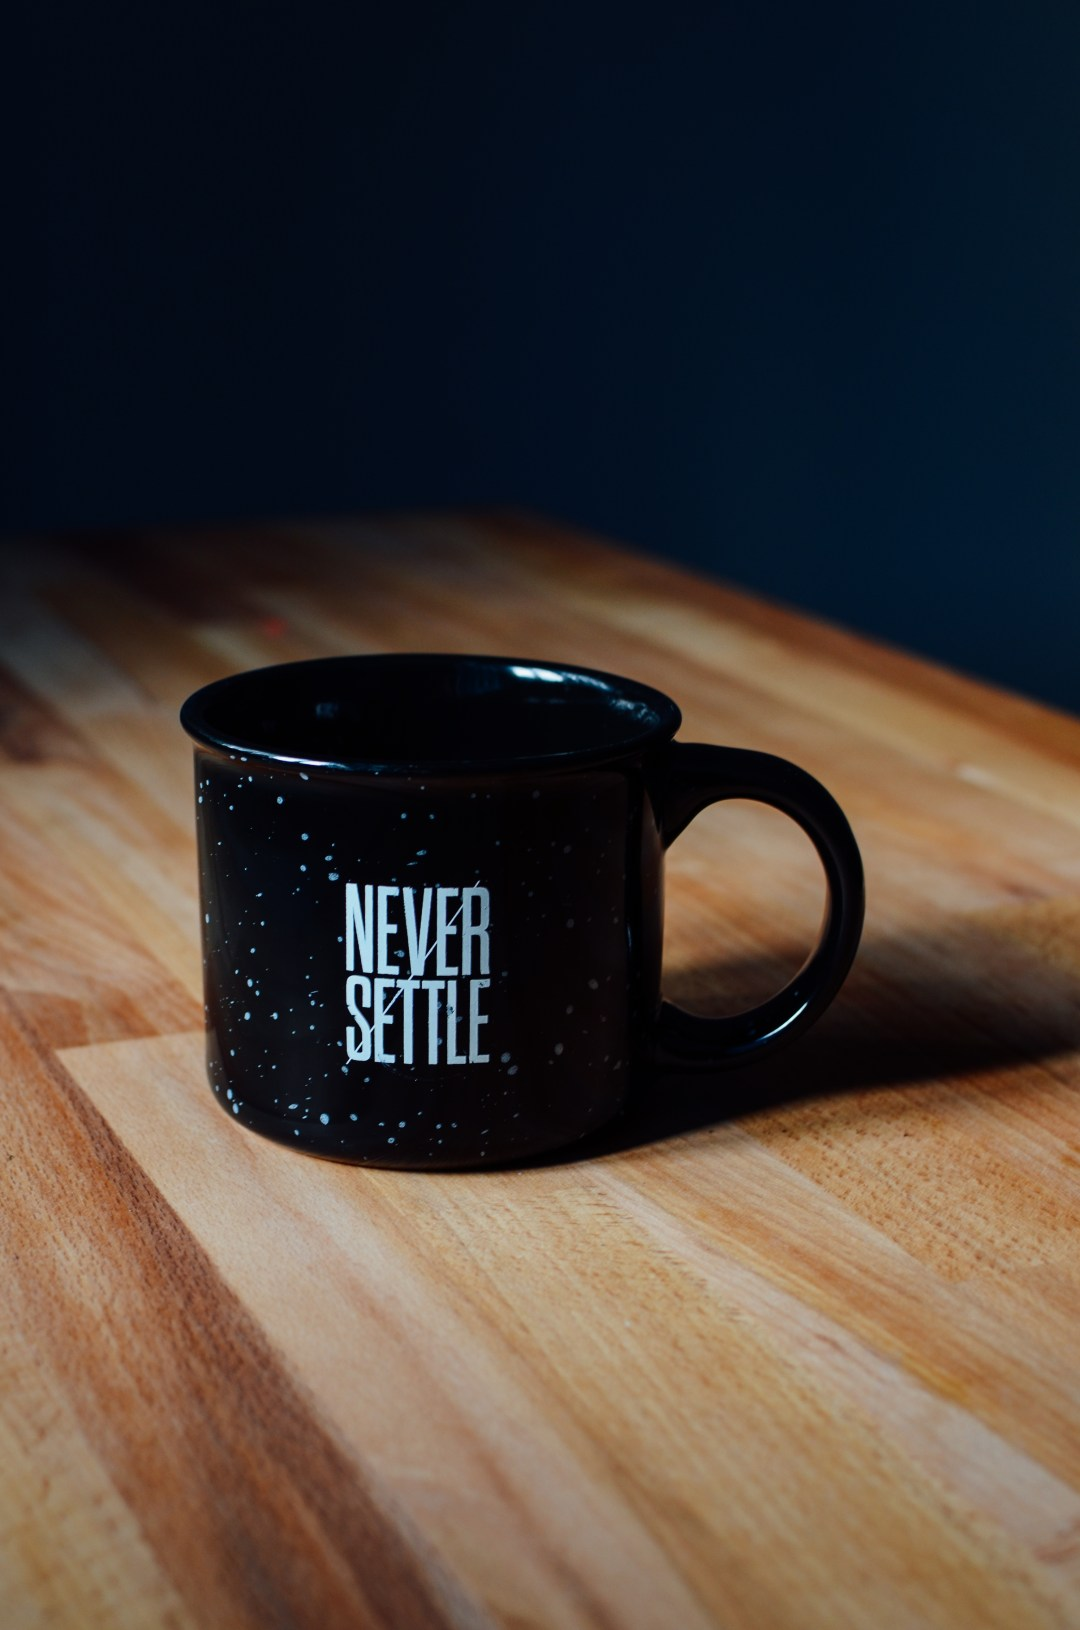 Beautiful Wallpapers With Quotes Of Life Never Settle Mug Photo By Ryan Riggins Ryan Riggins On